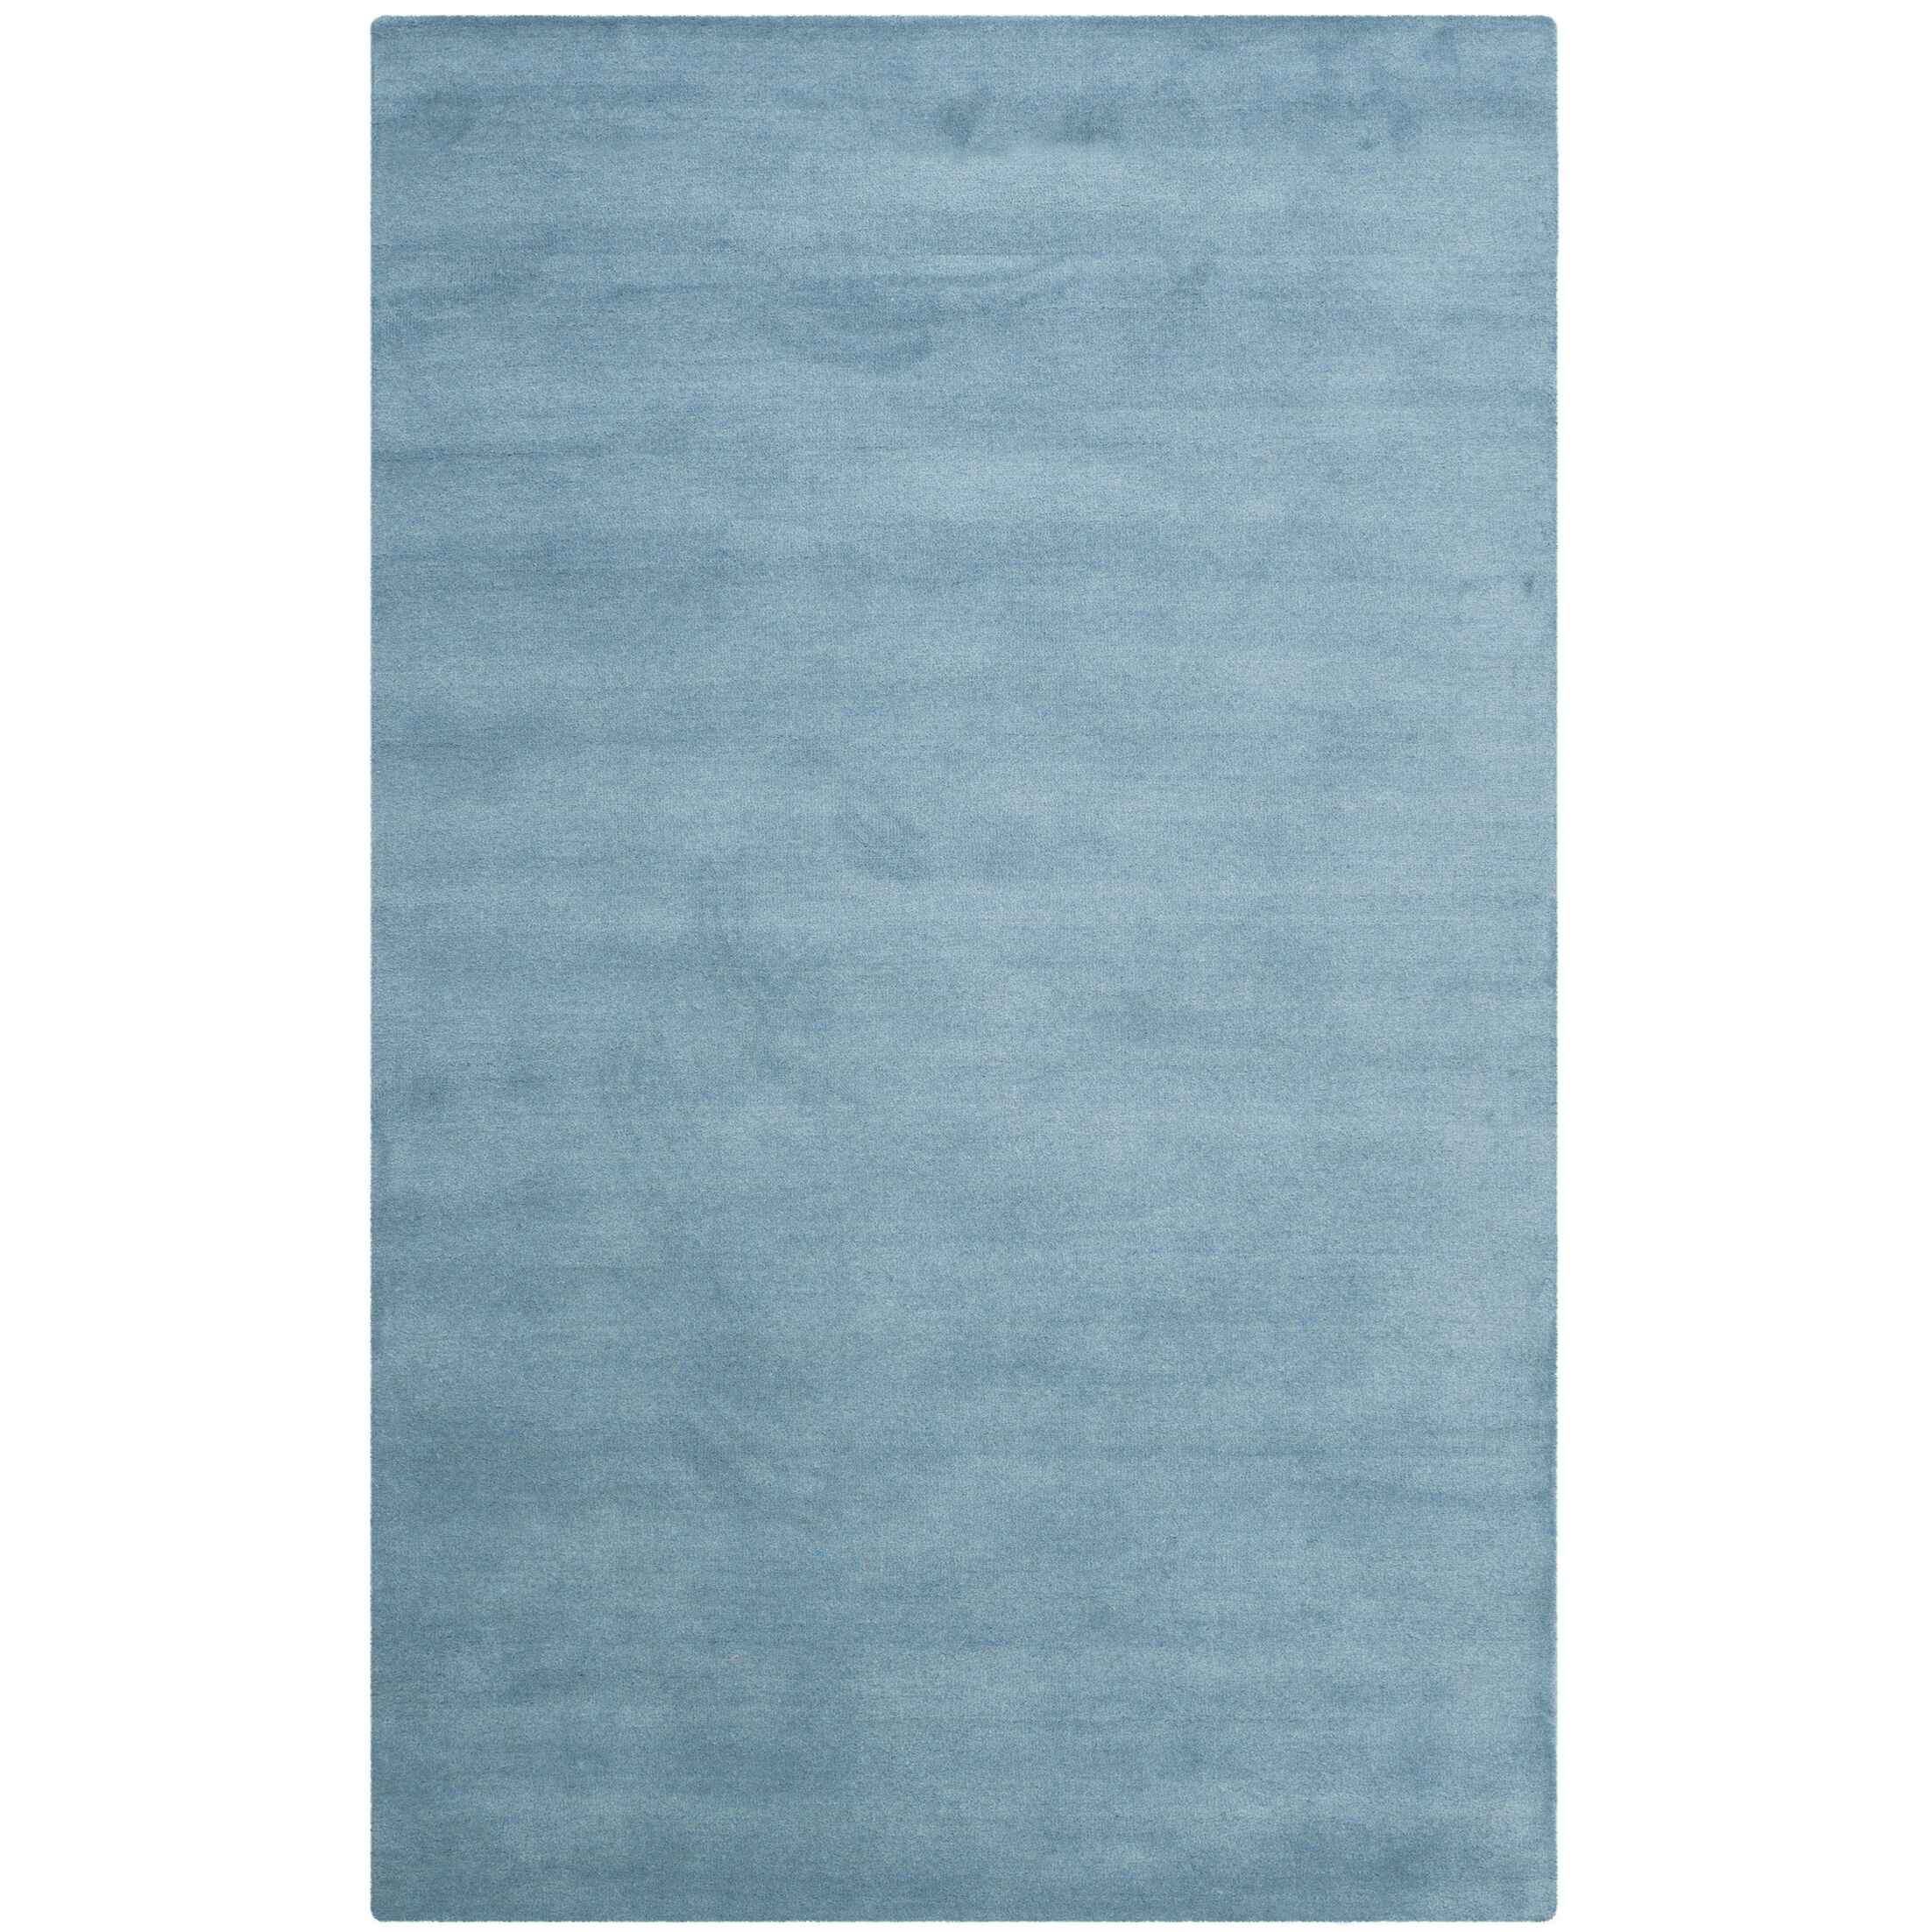 Bargo Hand-Woven Wool Blue Area Rug Rug Size: Rectangle 9' x 12'